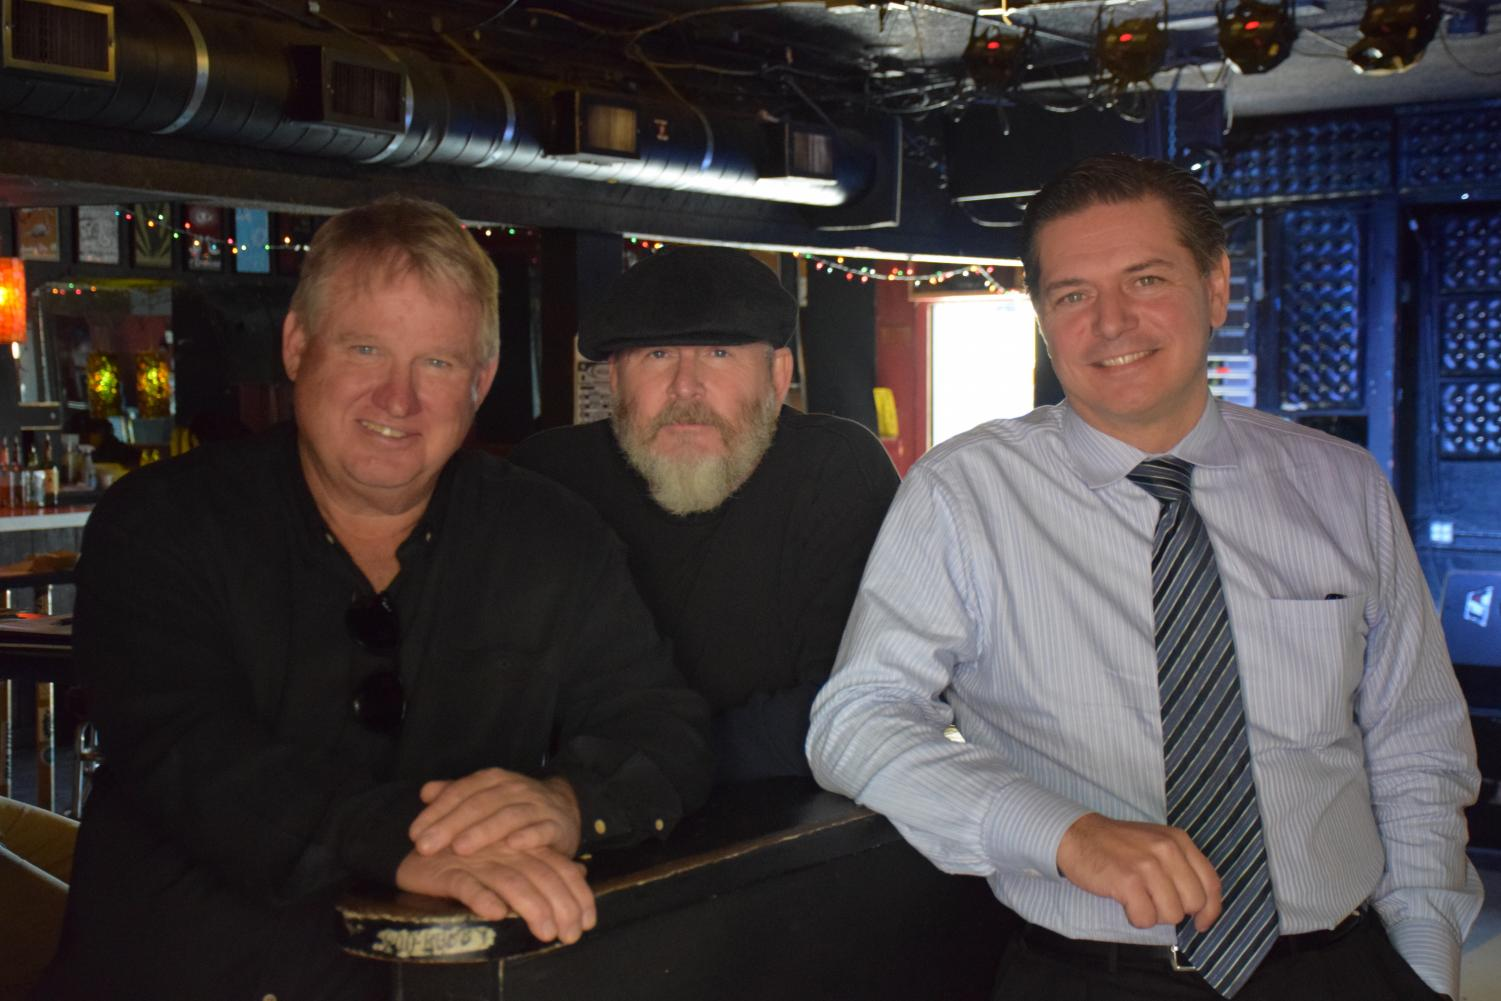 Randal Phillips, Michael Halloran and Mario Mayans sit at the Casbah in San Diego during a press event for the new MORE-FM bilingual station format on Monday, March 26, 2018.